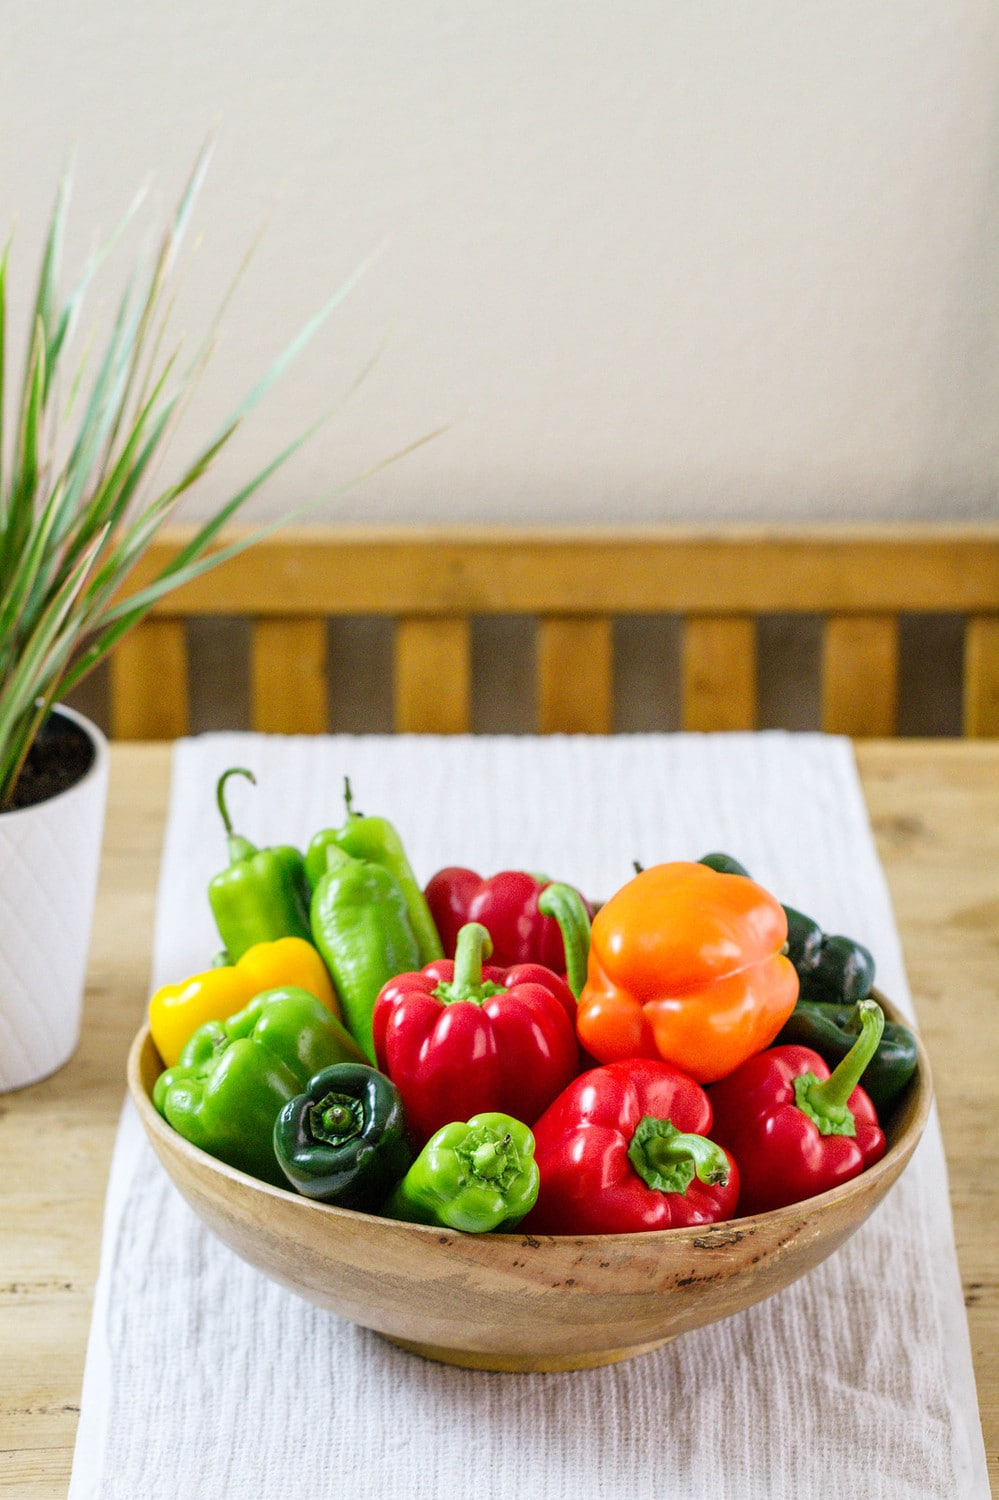 a variety of pepper in a wooden bowl on a table.